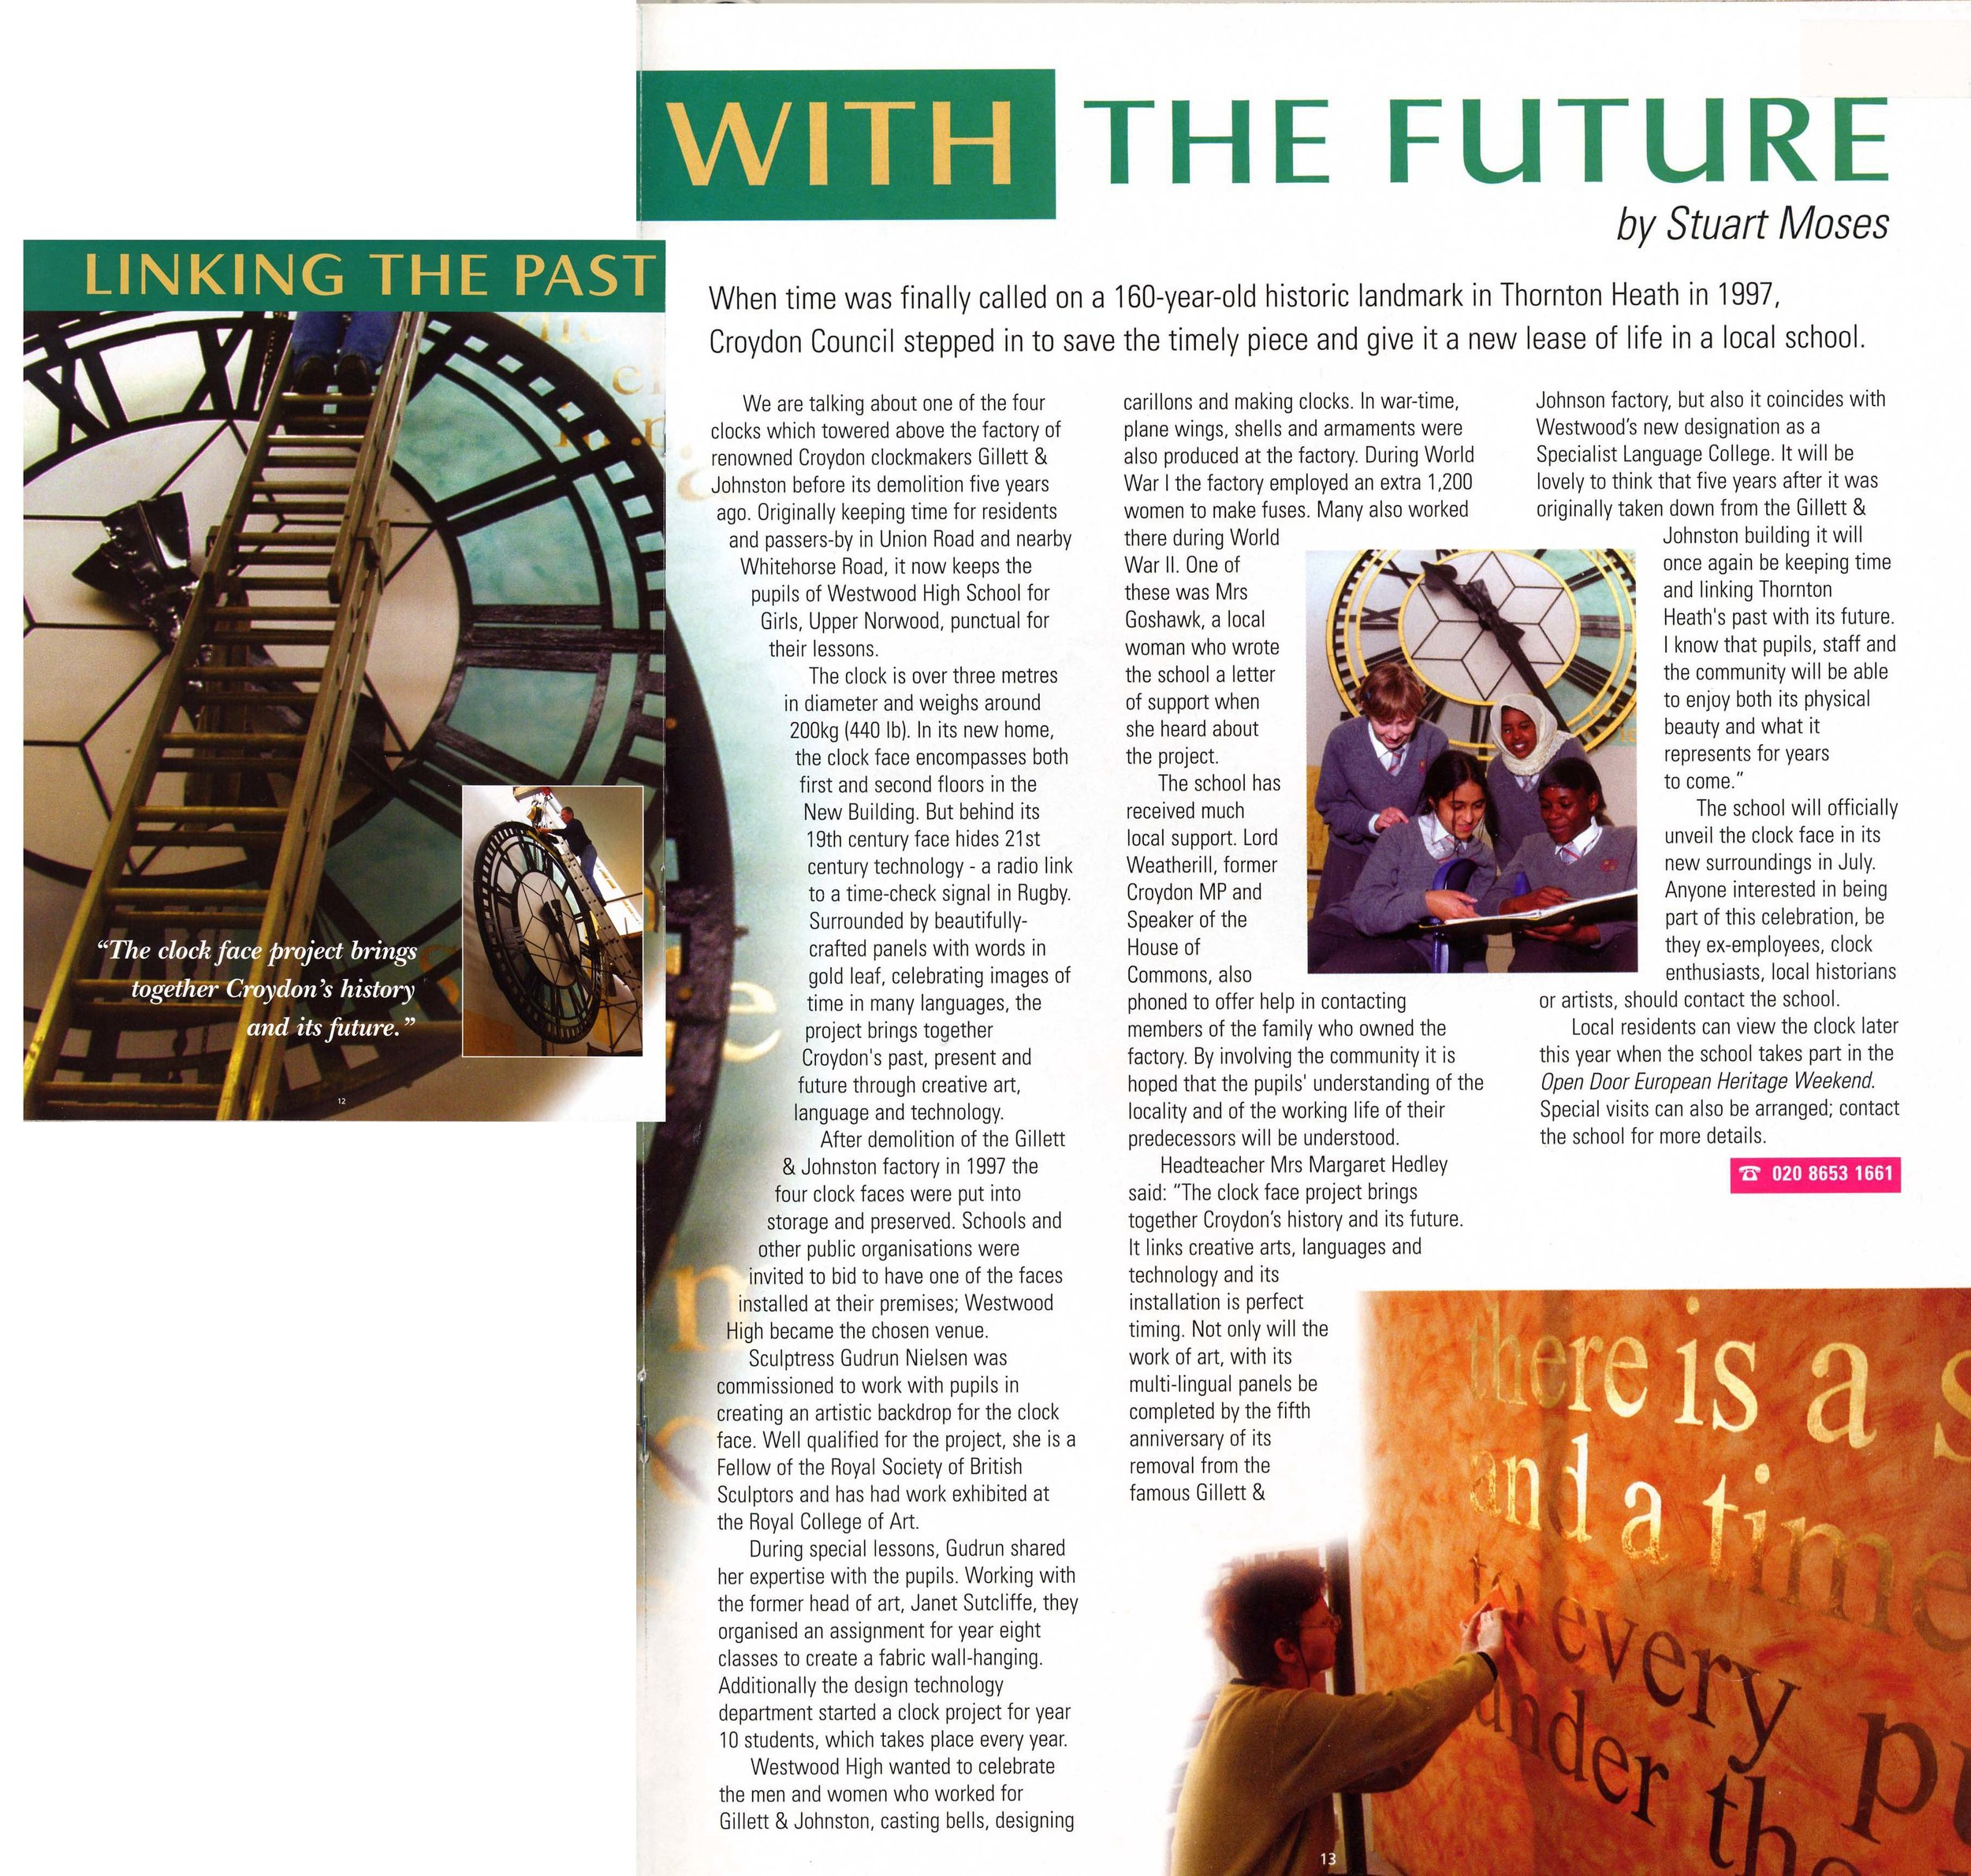 14 2002 Linking the past with the future Croydon Reports text Stuart Moses June Issue 39.jpg